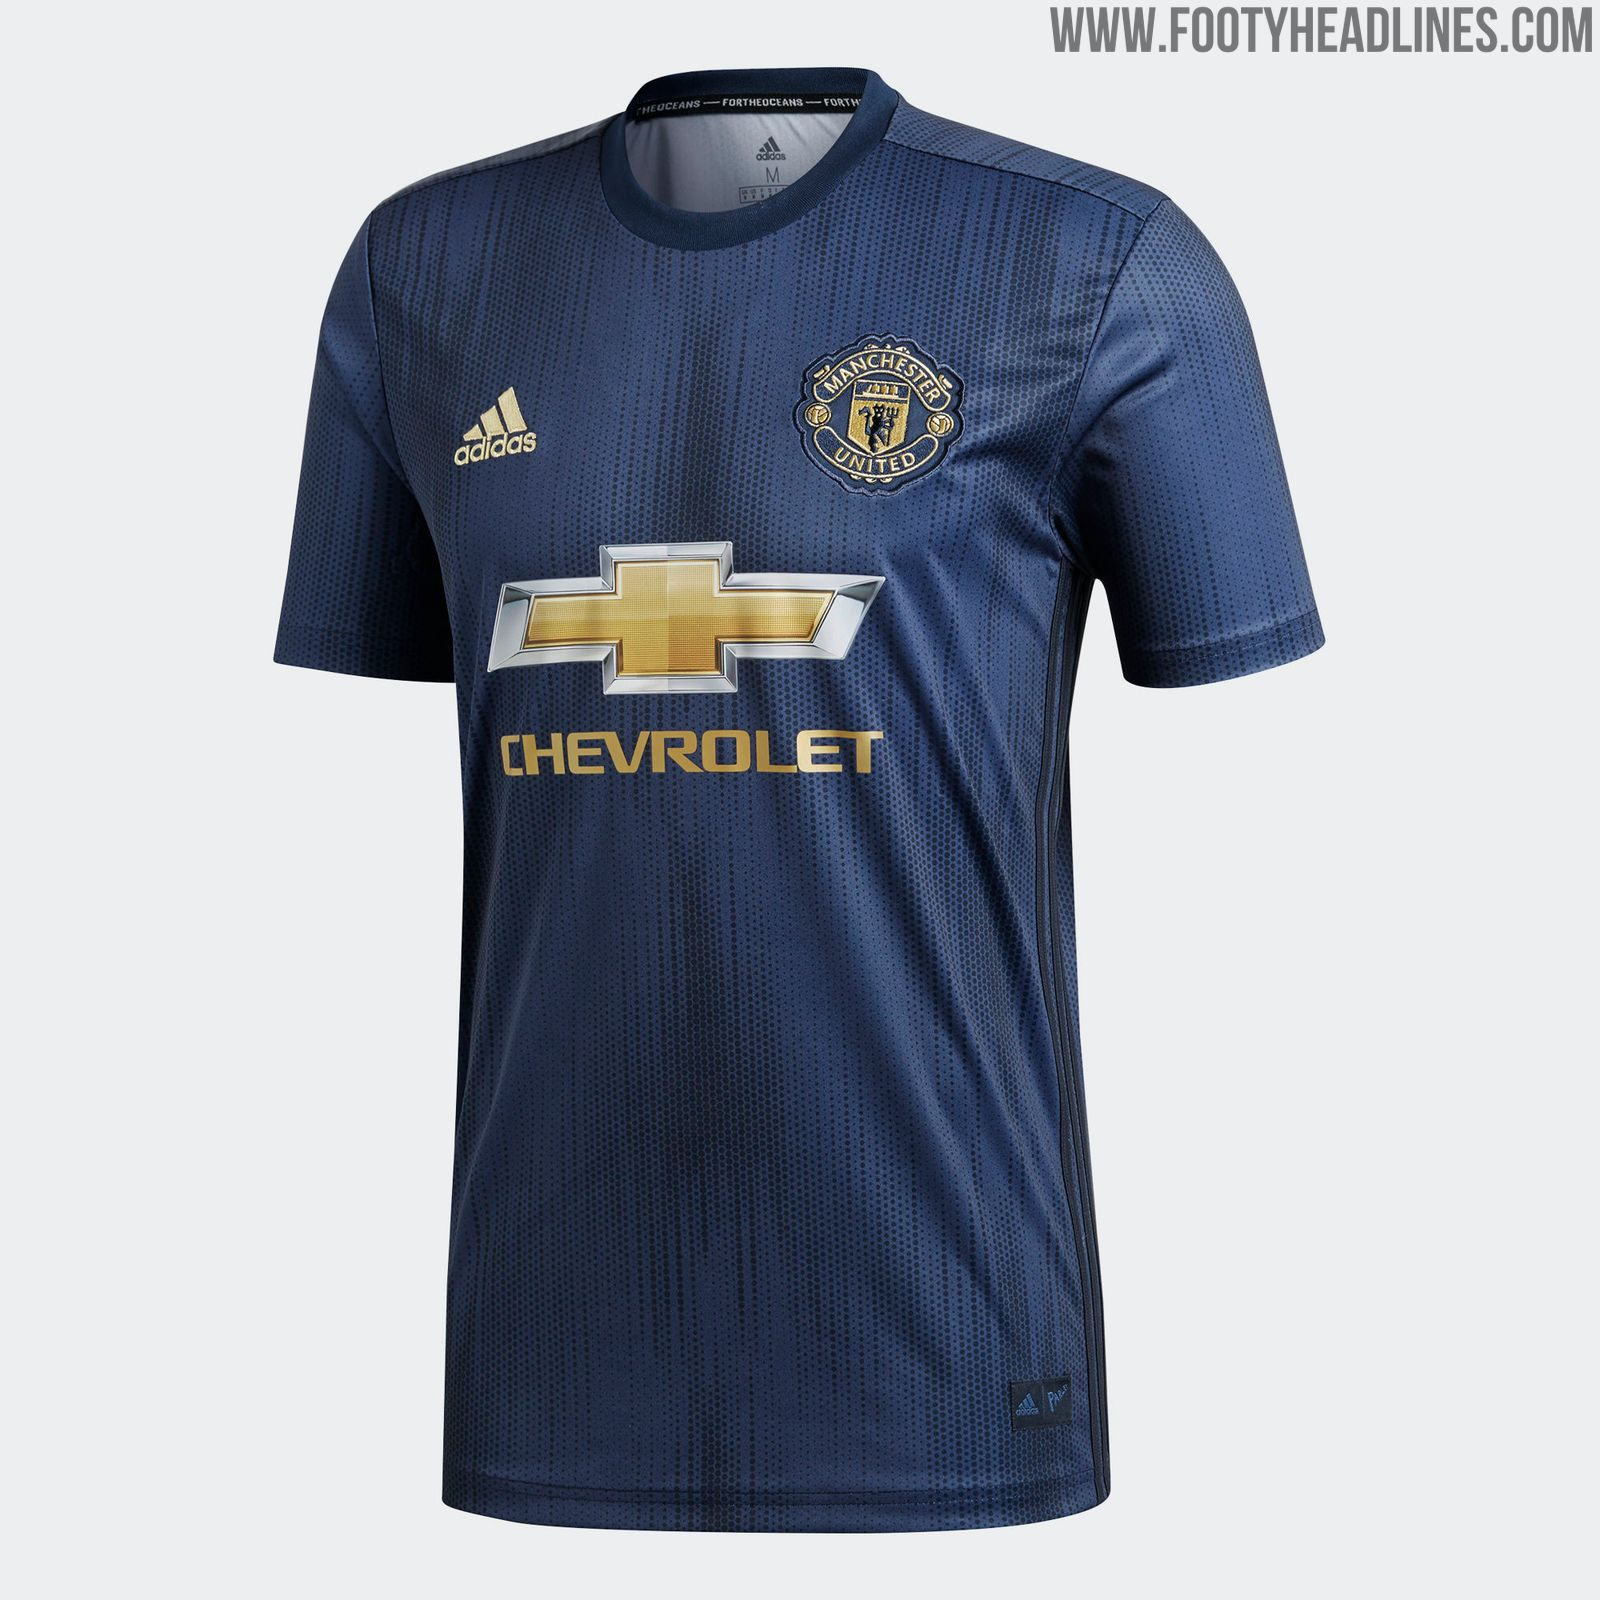 3382e65fe0 Manchester United 18-19 Third Kit Buy now. Free UK shipping - worldwide  delivery